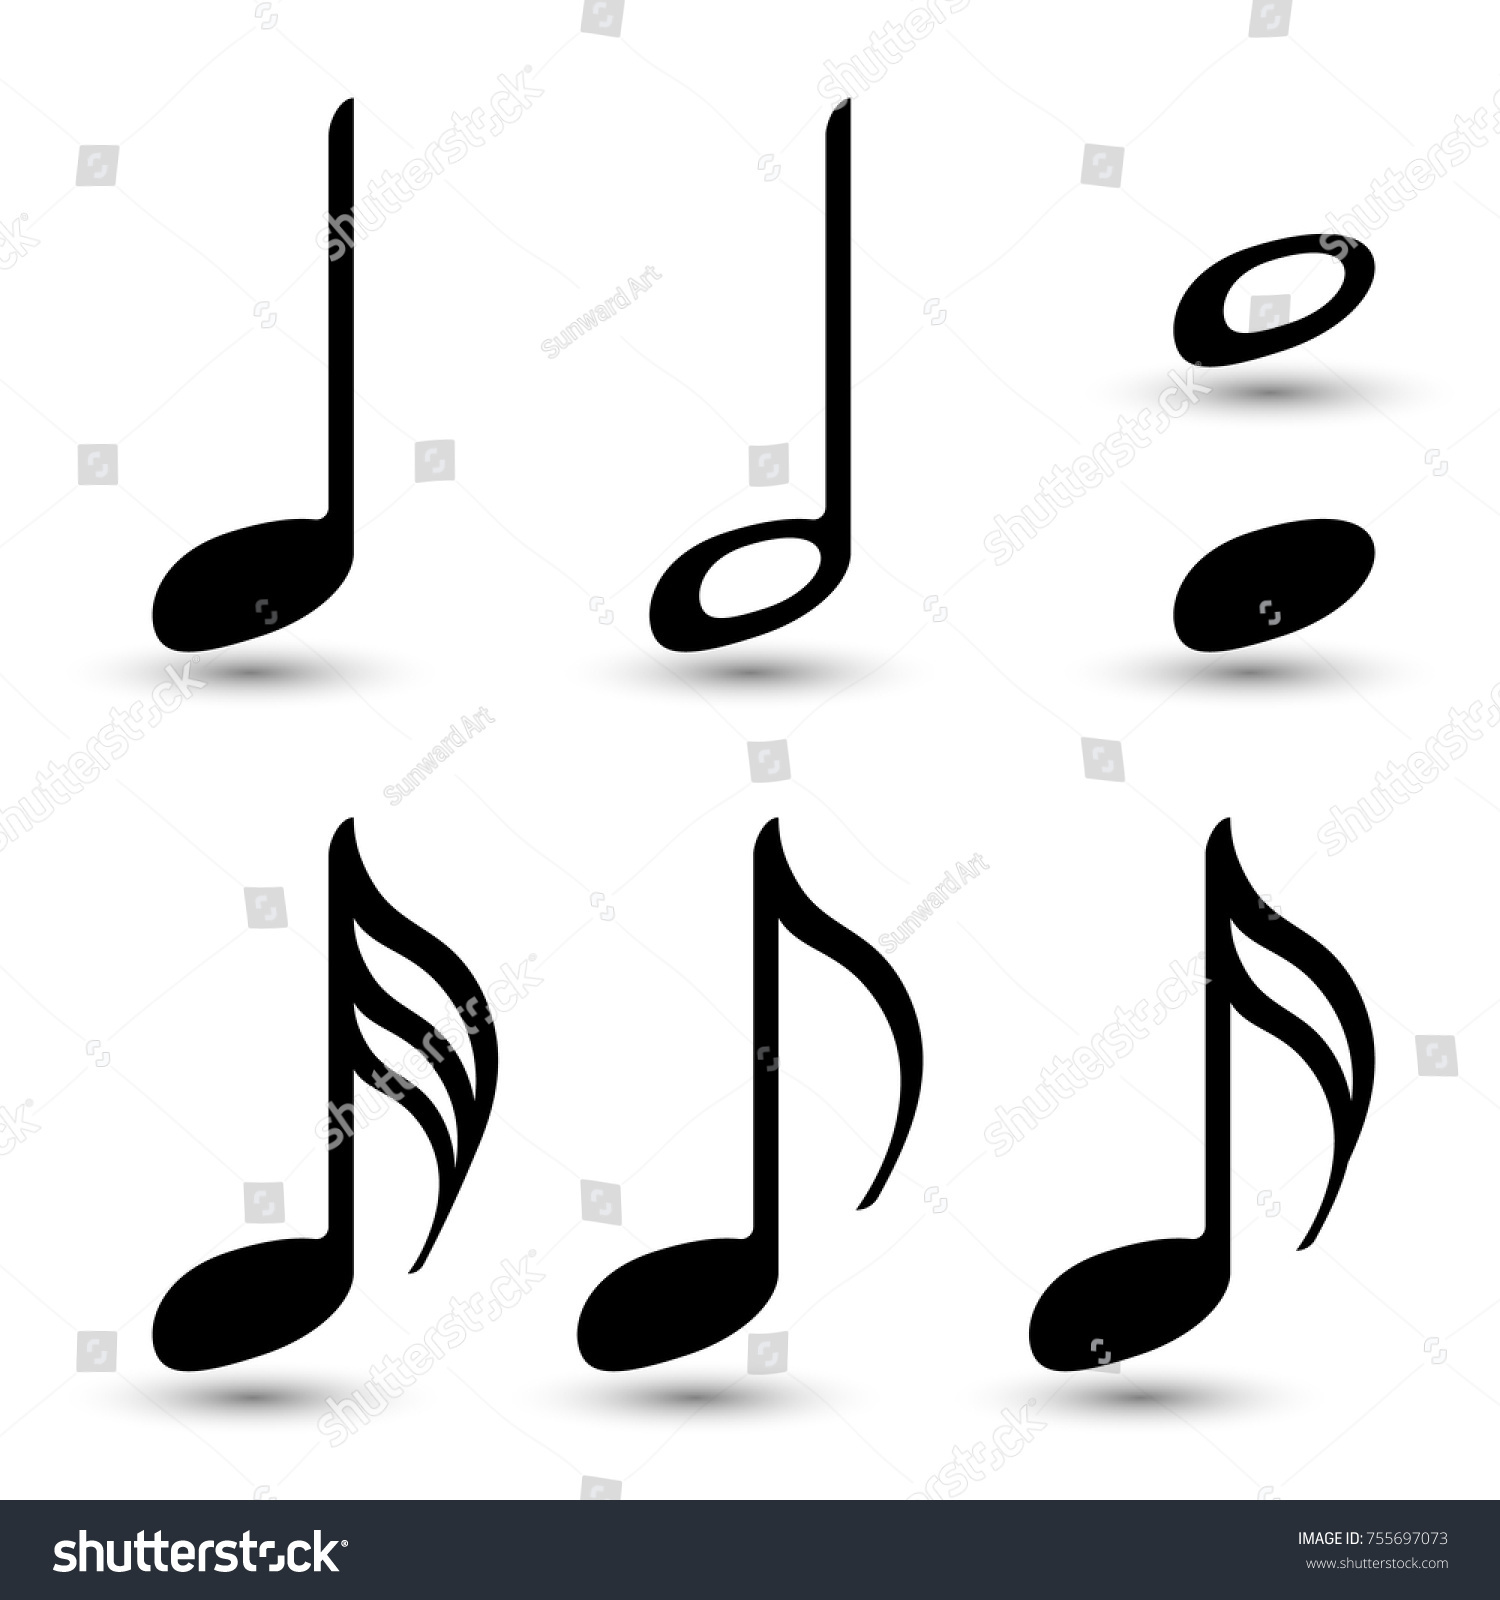 Music note icons vector set black stock vector 755697073 music note icons vector set black symphony or melody signs isolated on white background biocorpaavc